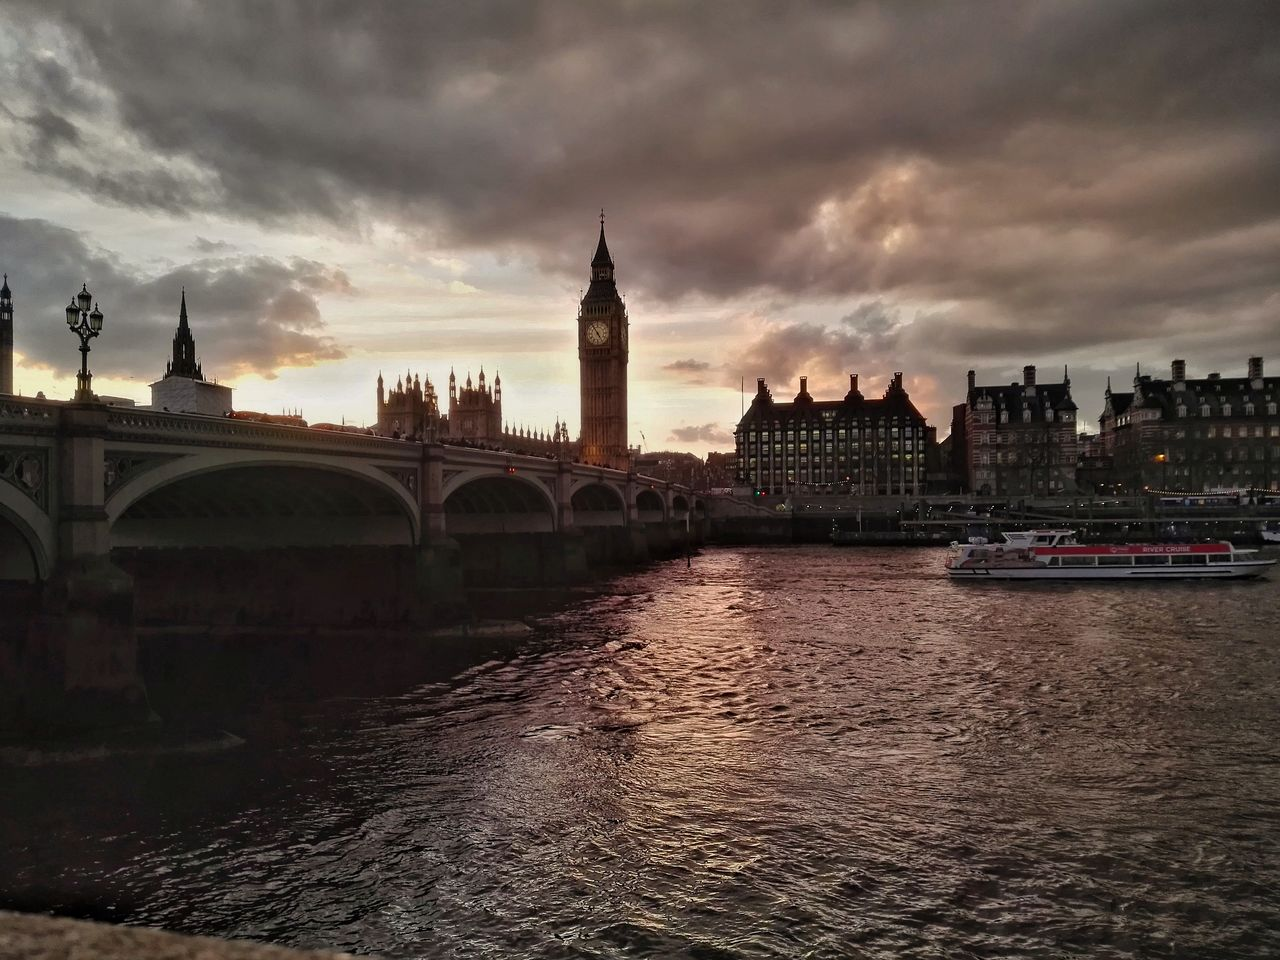 architecture, built structure, cloud - sky, building exterior, river, sky, water, waterfront, city, sunset, travel destinations, bridge - man made structure, clock tower, outdoors, no people, cityscape, day, nautical vessel, nature